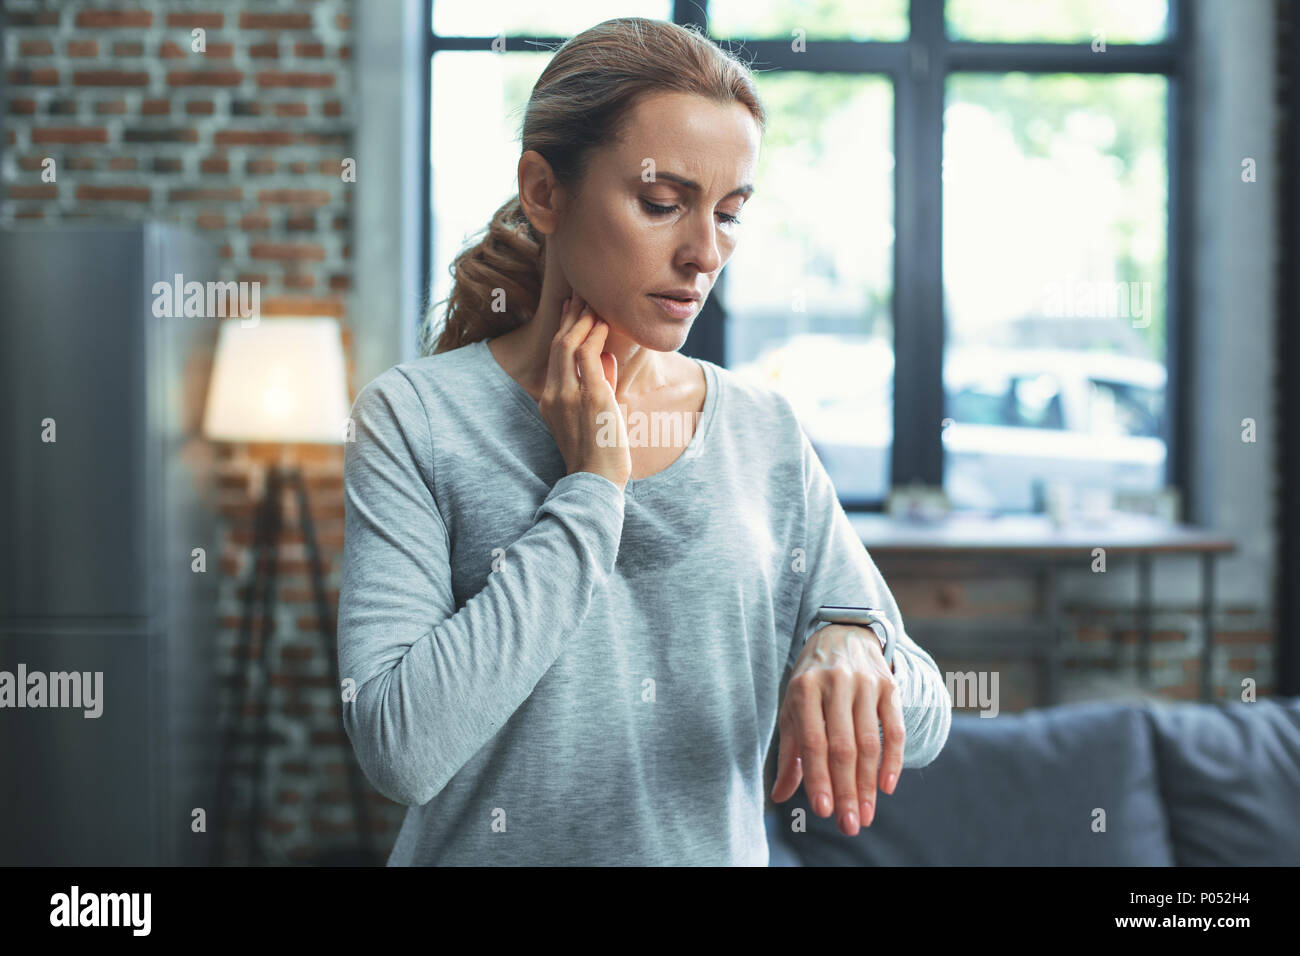 Earnest mature woman checking life signs - Stock Image